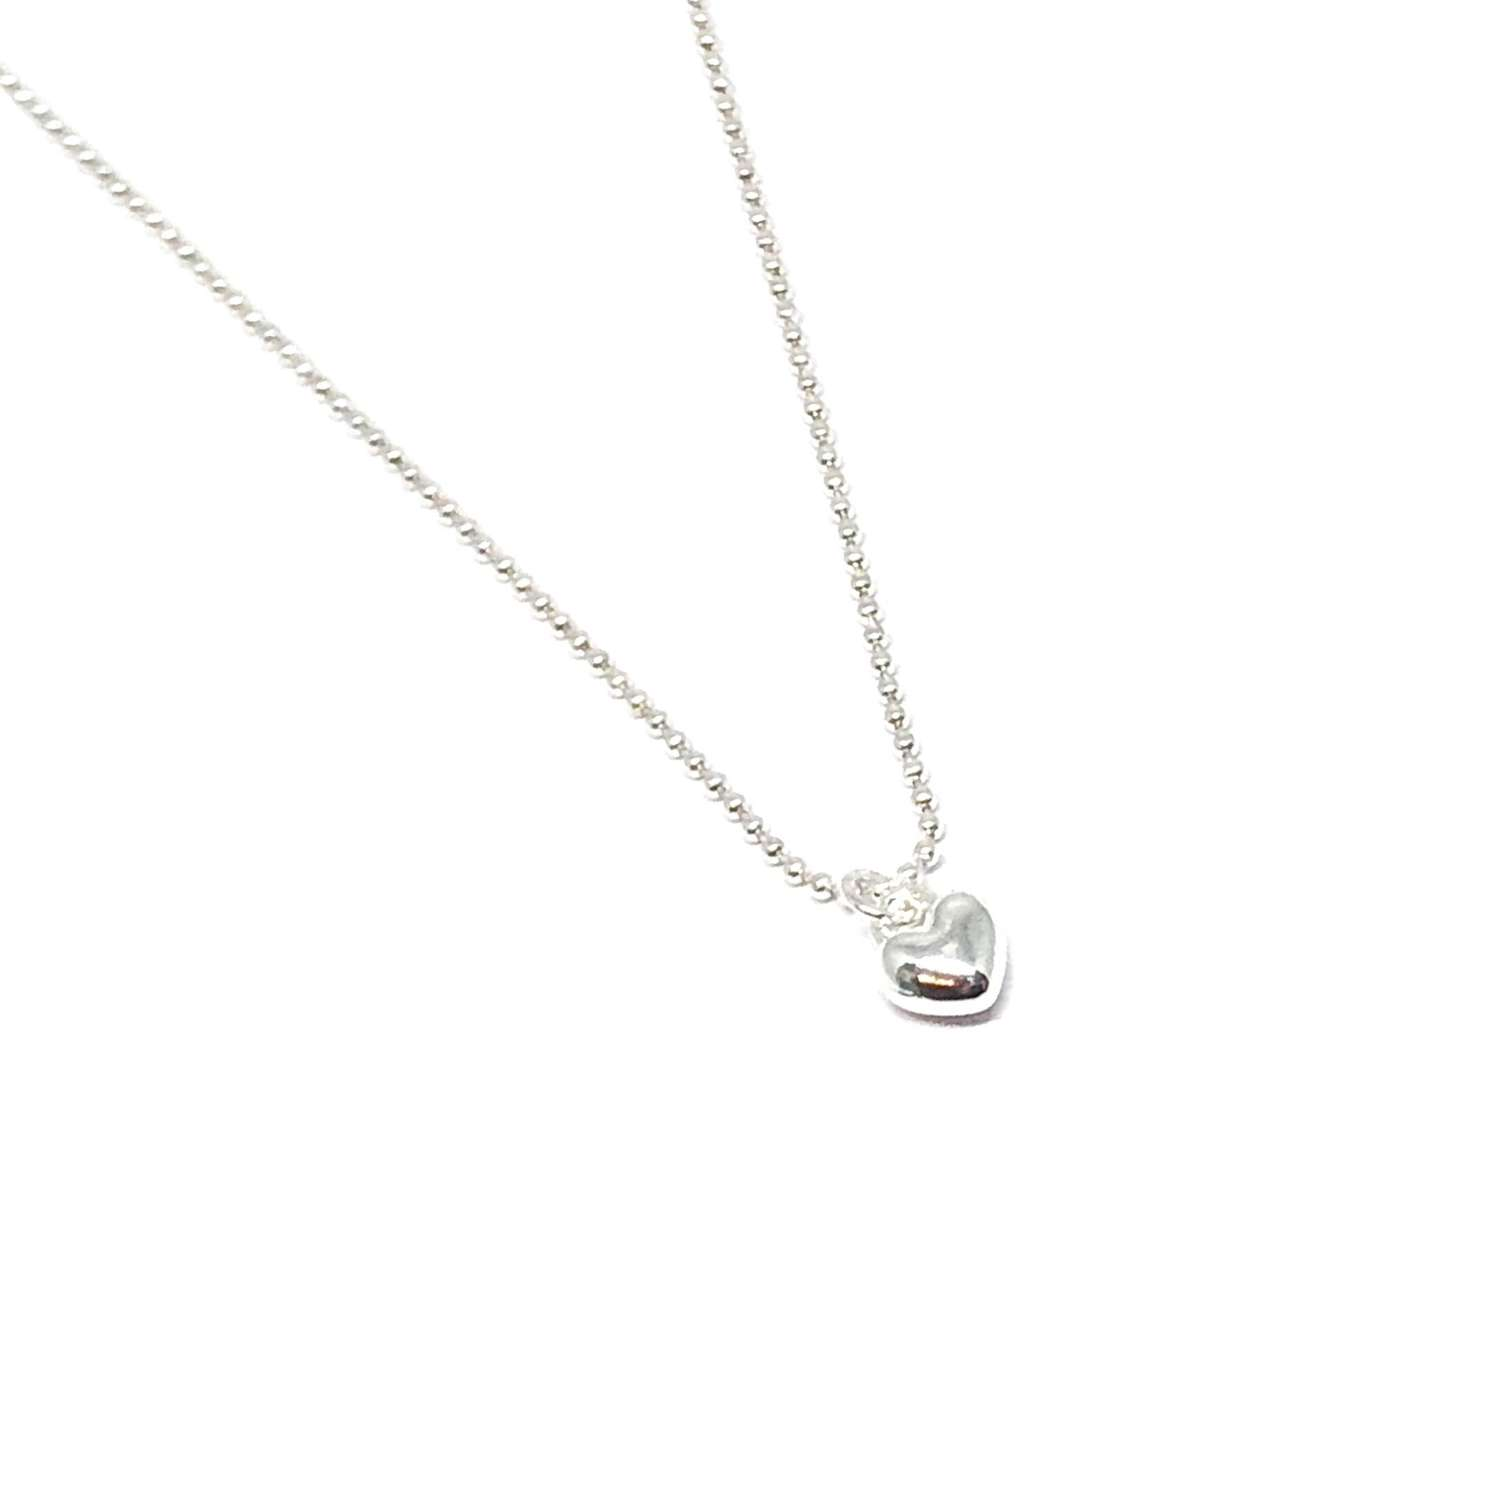 Maisy Mini Heart Necklace - Silver